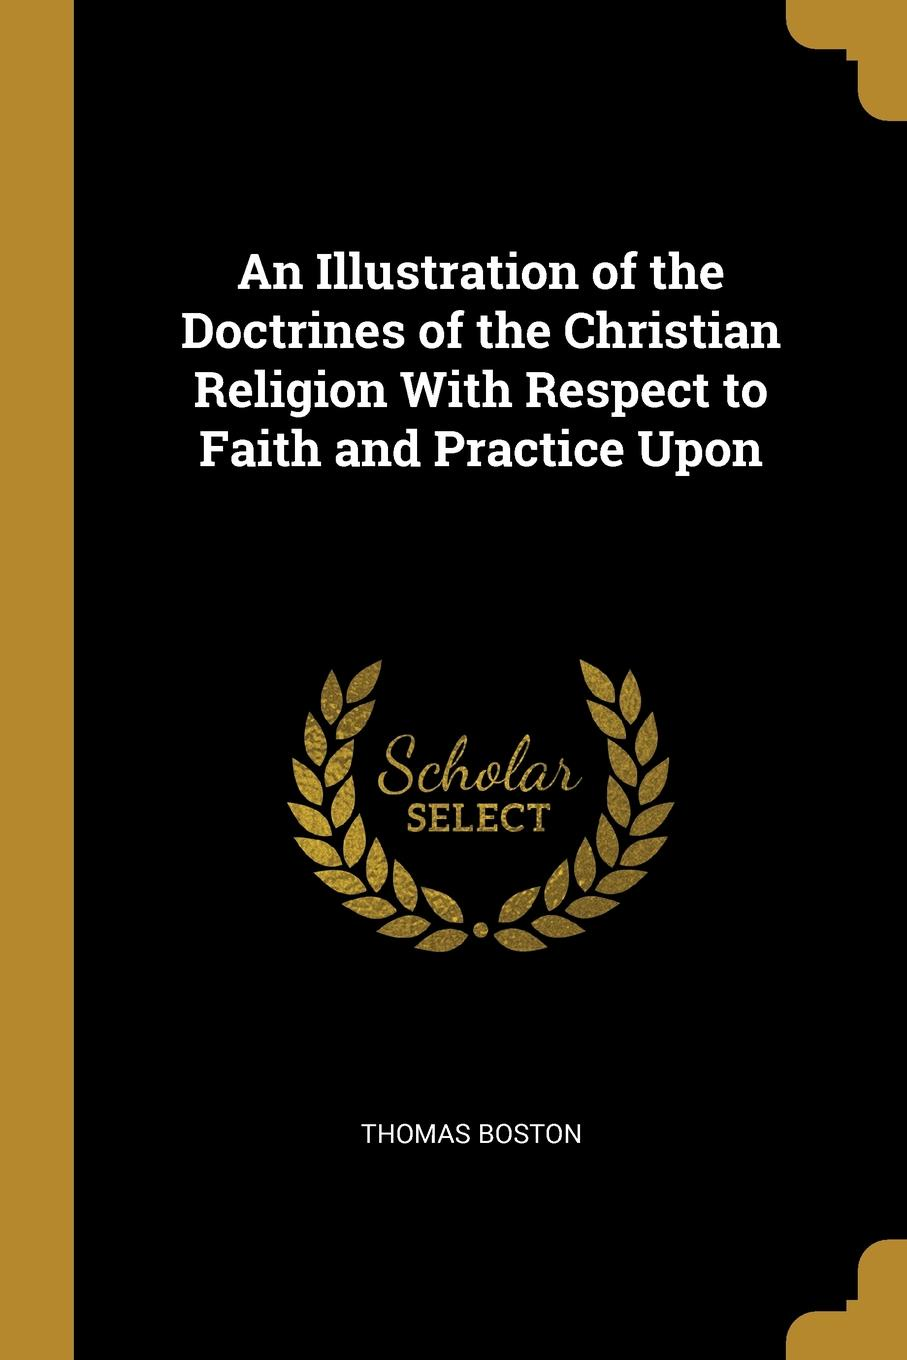 Thomas Boston An Illustration of the Doctrines of the Christian Religion With Respect to Faith and Practice Upon thomas boston an illustration of the doctrines of the christian religion with respect to faith and practice